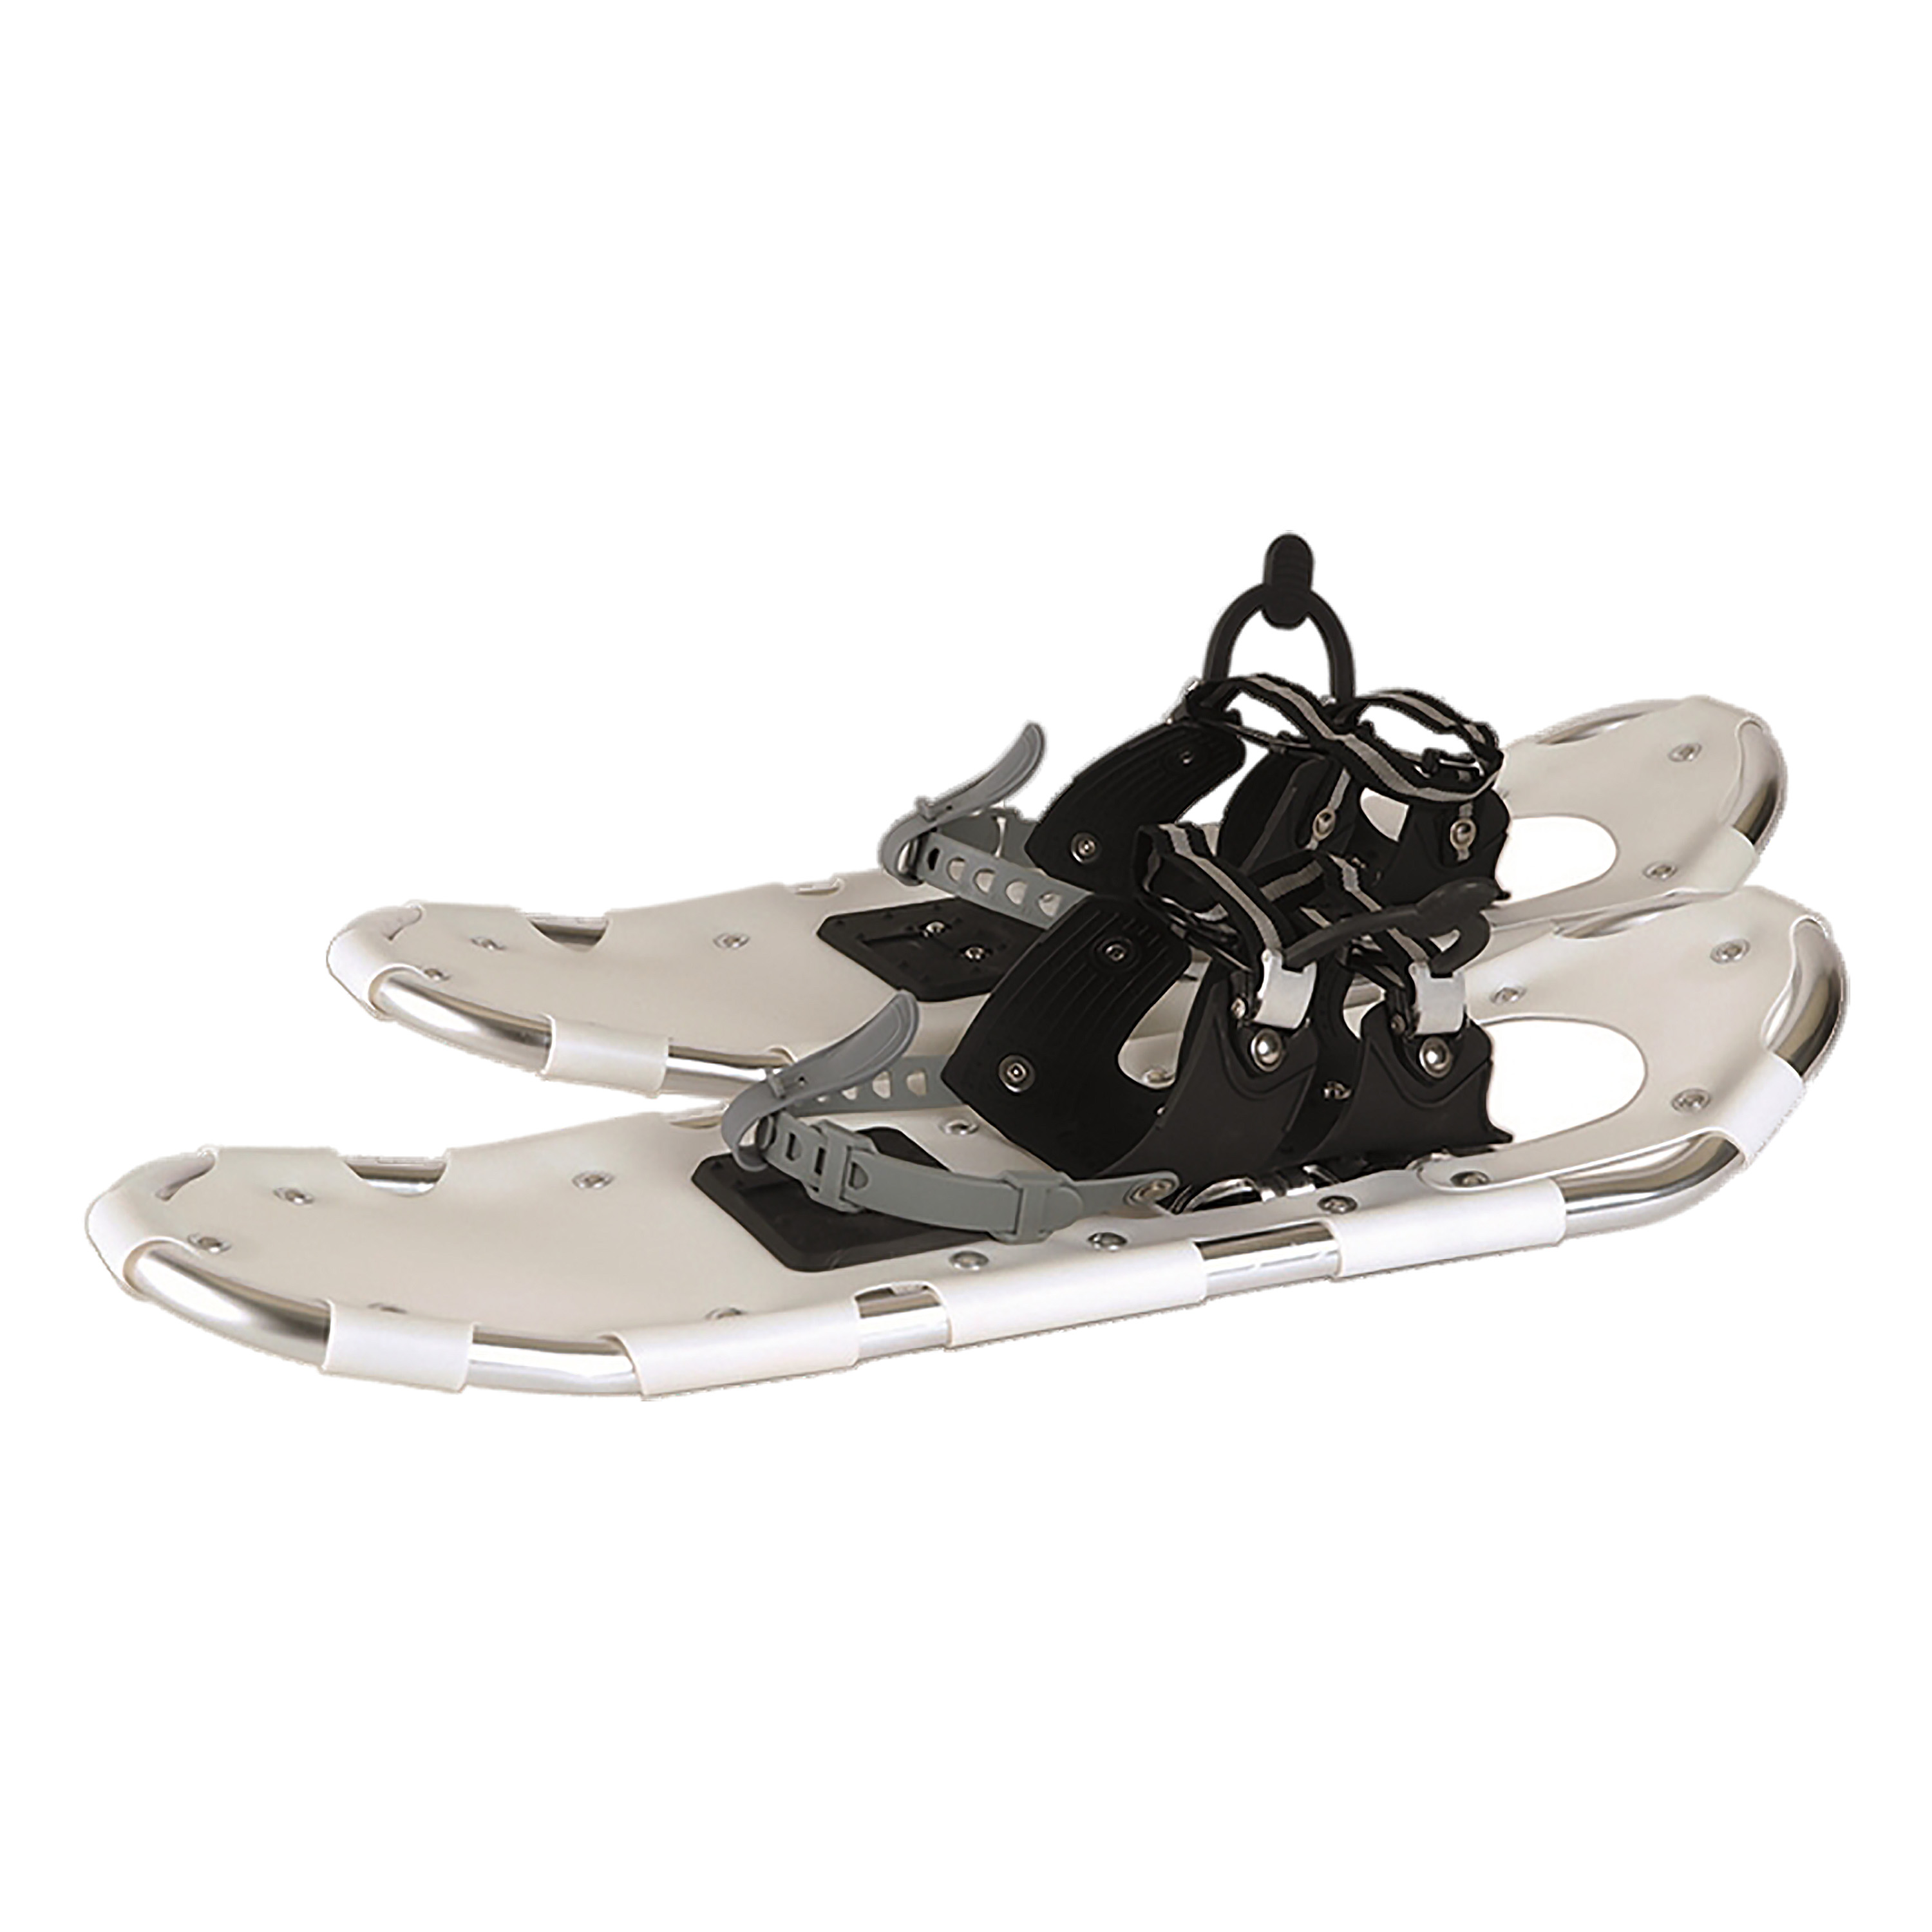 Snow Shoes with Aluminum Frame white